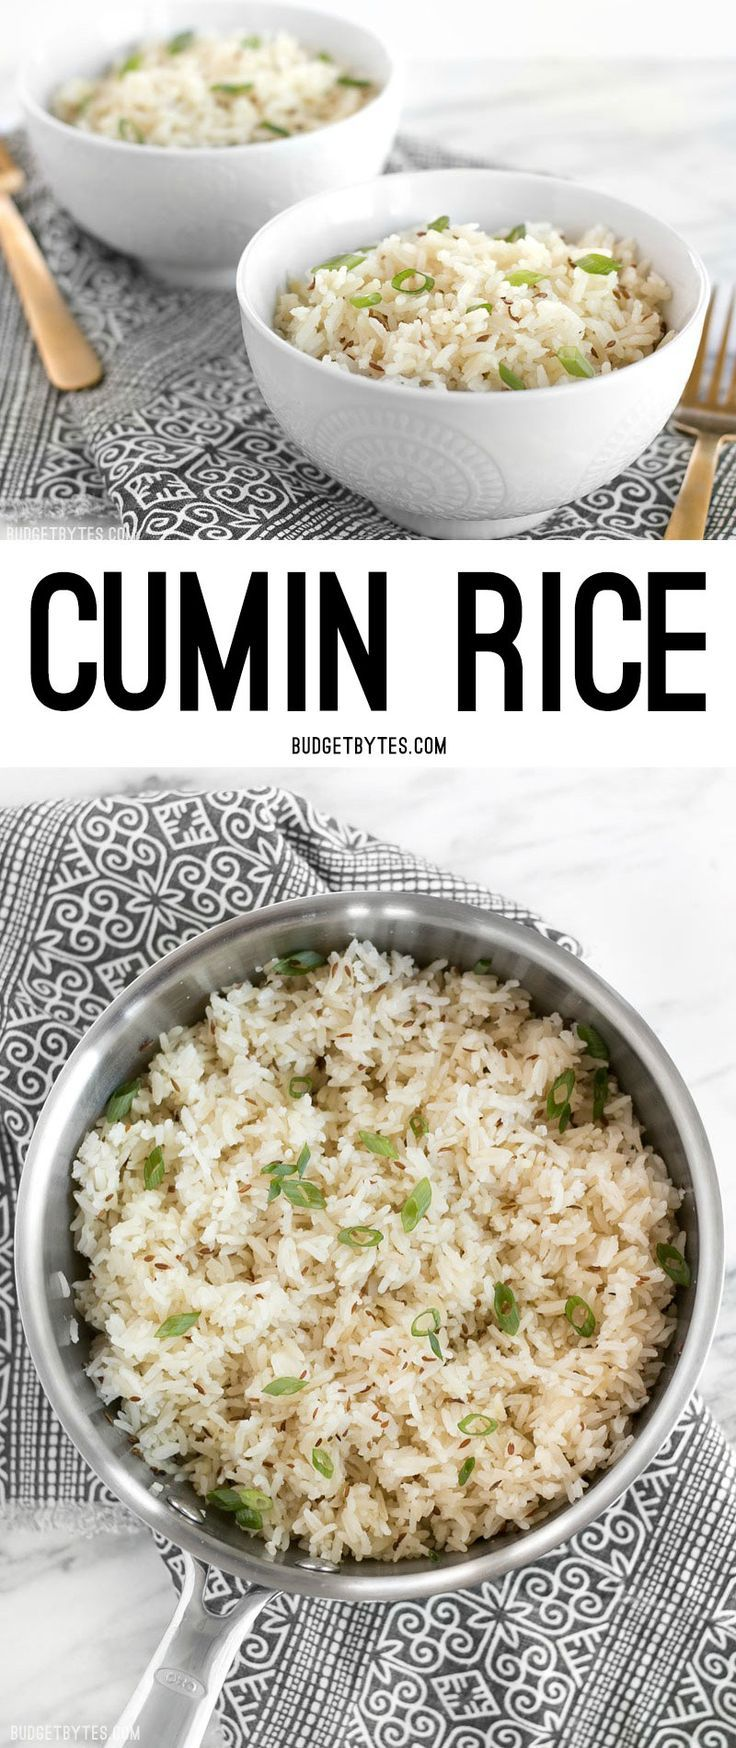 Cumin rice is an earthy and slightly peppery dish that can be used as the base for many meals. @budgetbytes